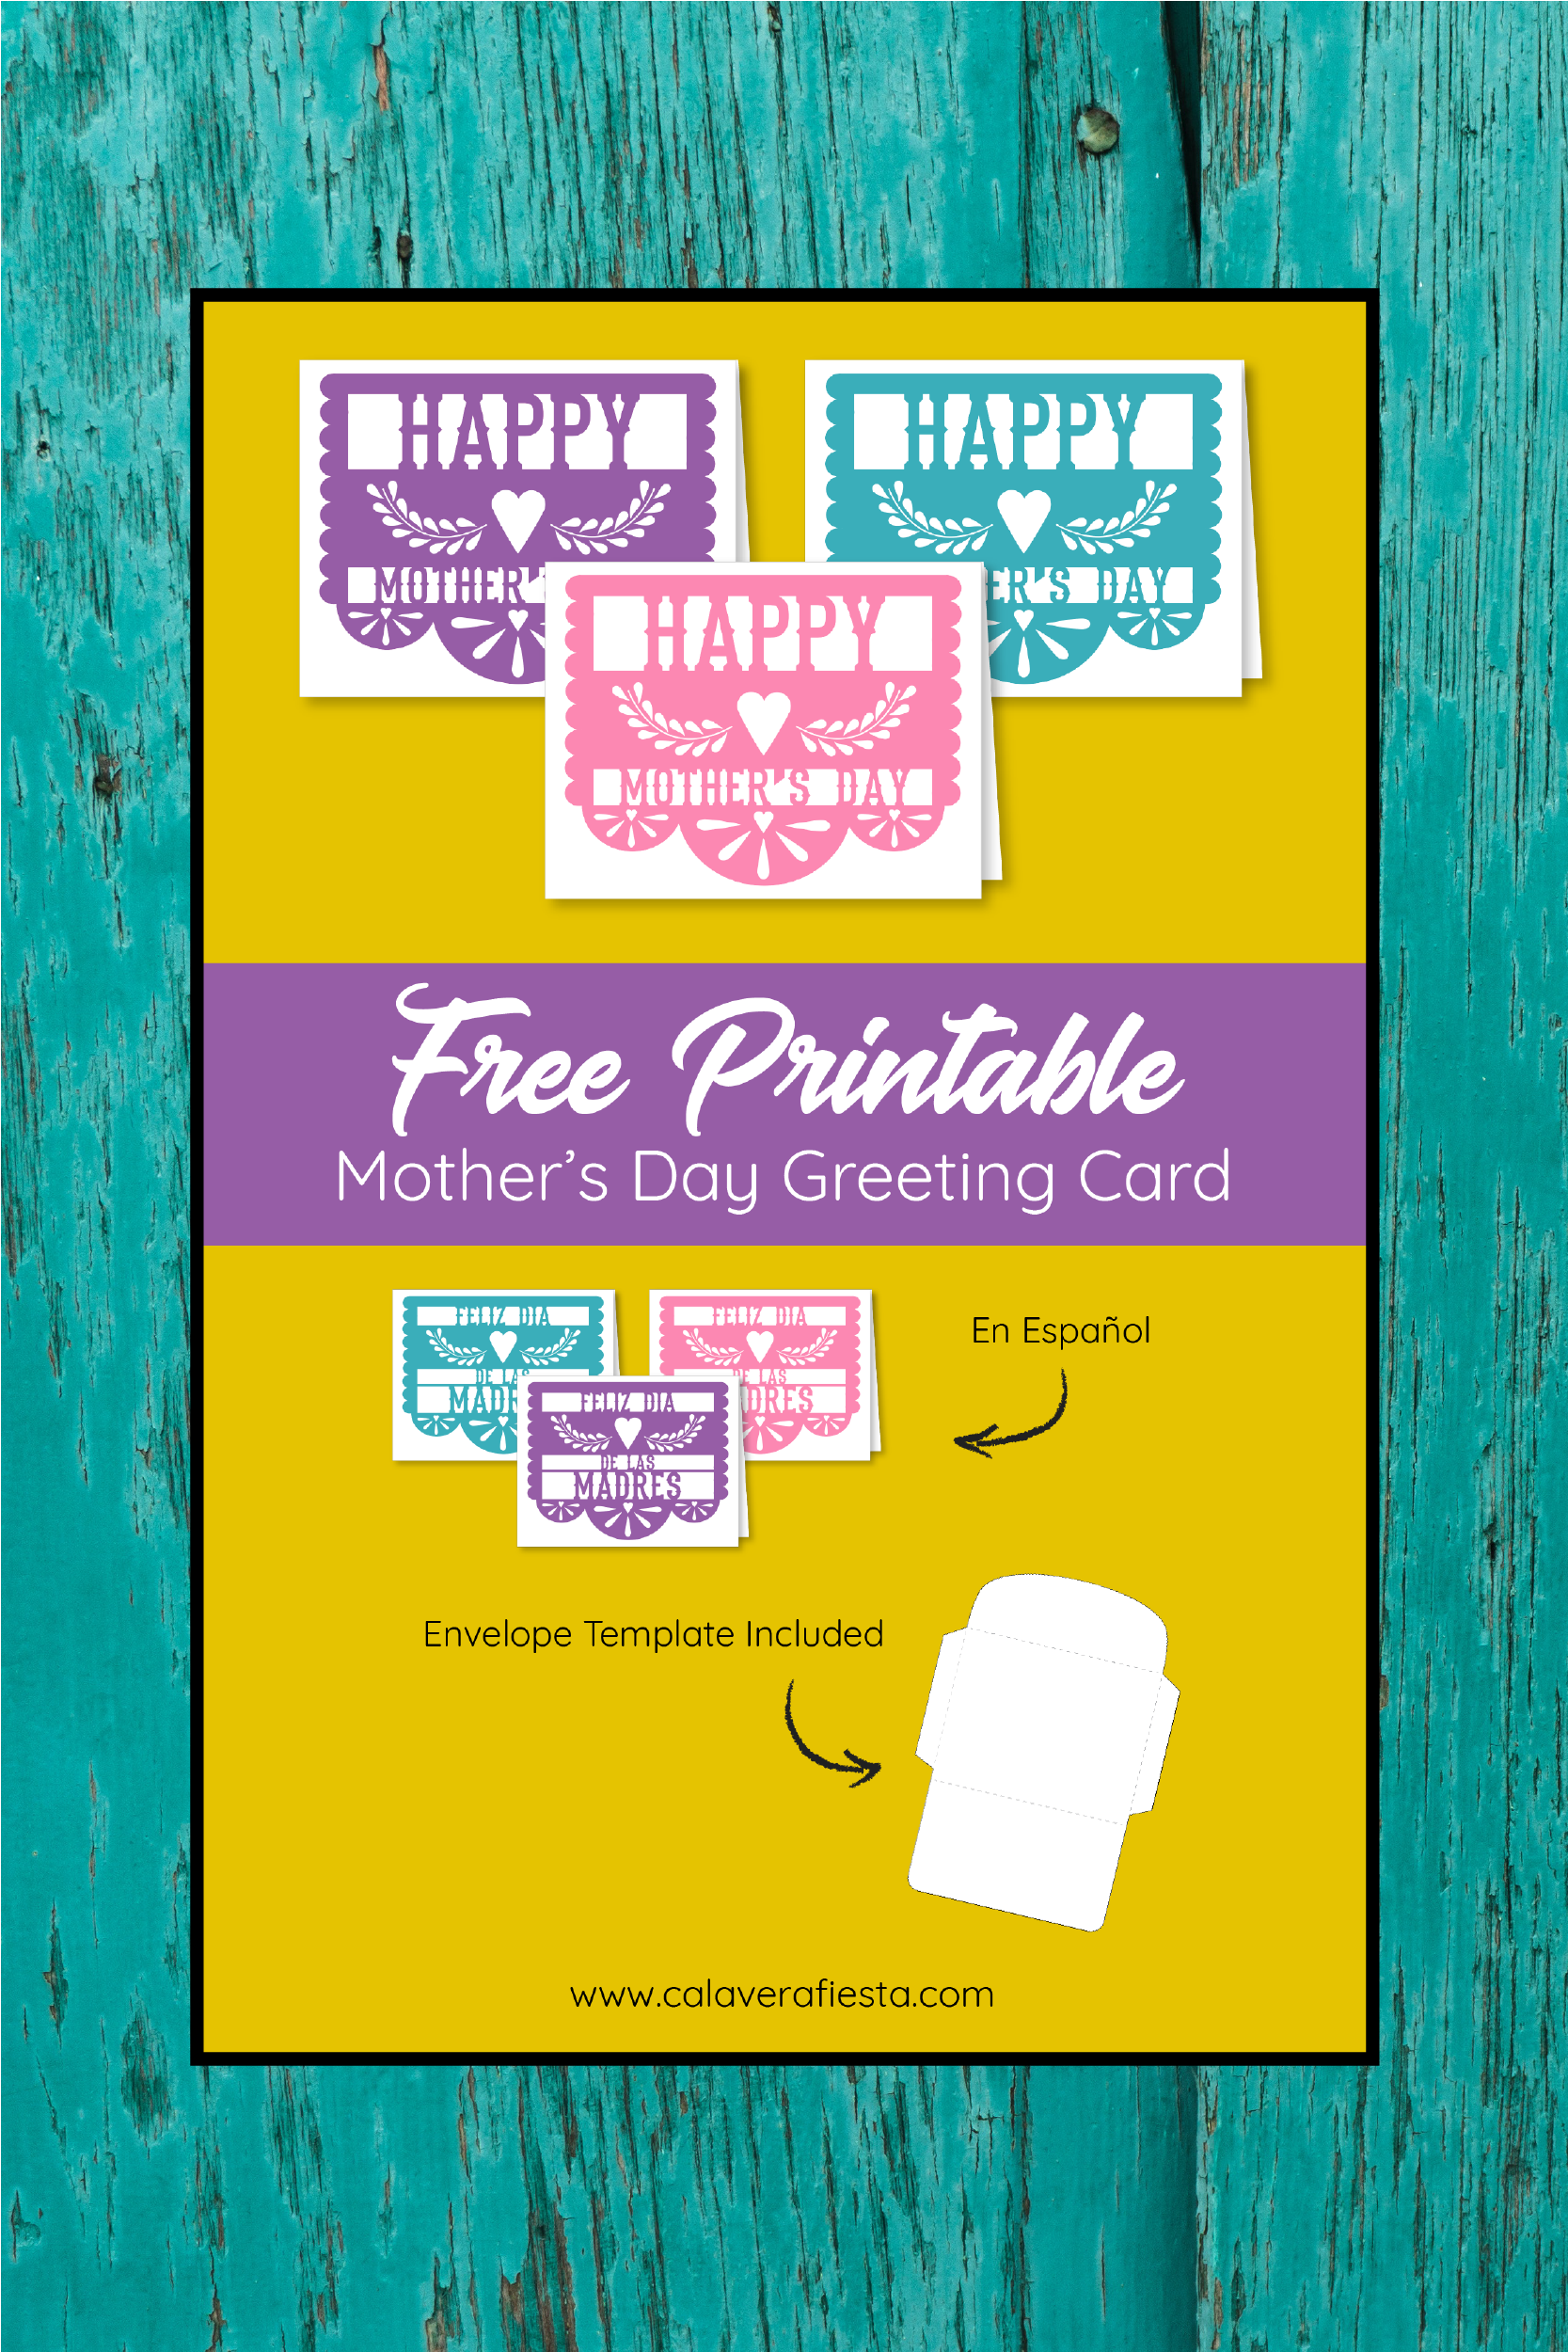 image about Papel Picado Printable referred to as Moms Working day Papel Picado Printable Card - Calavera Fiesta